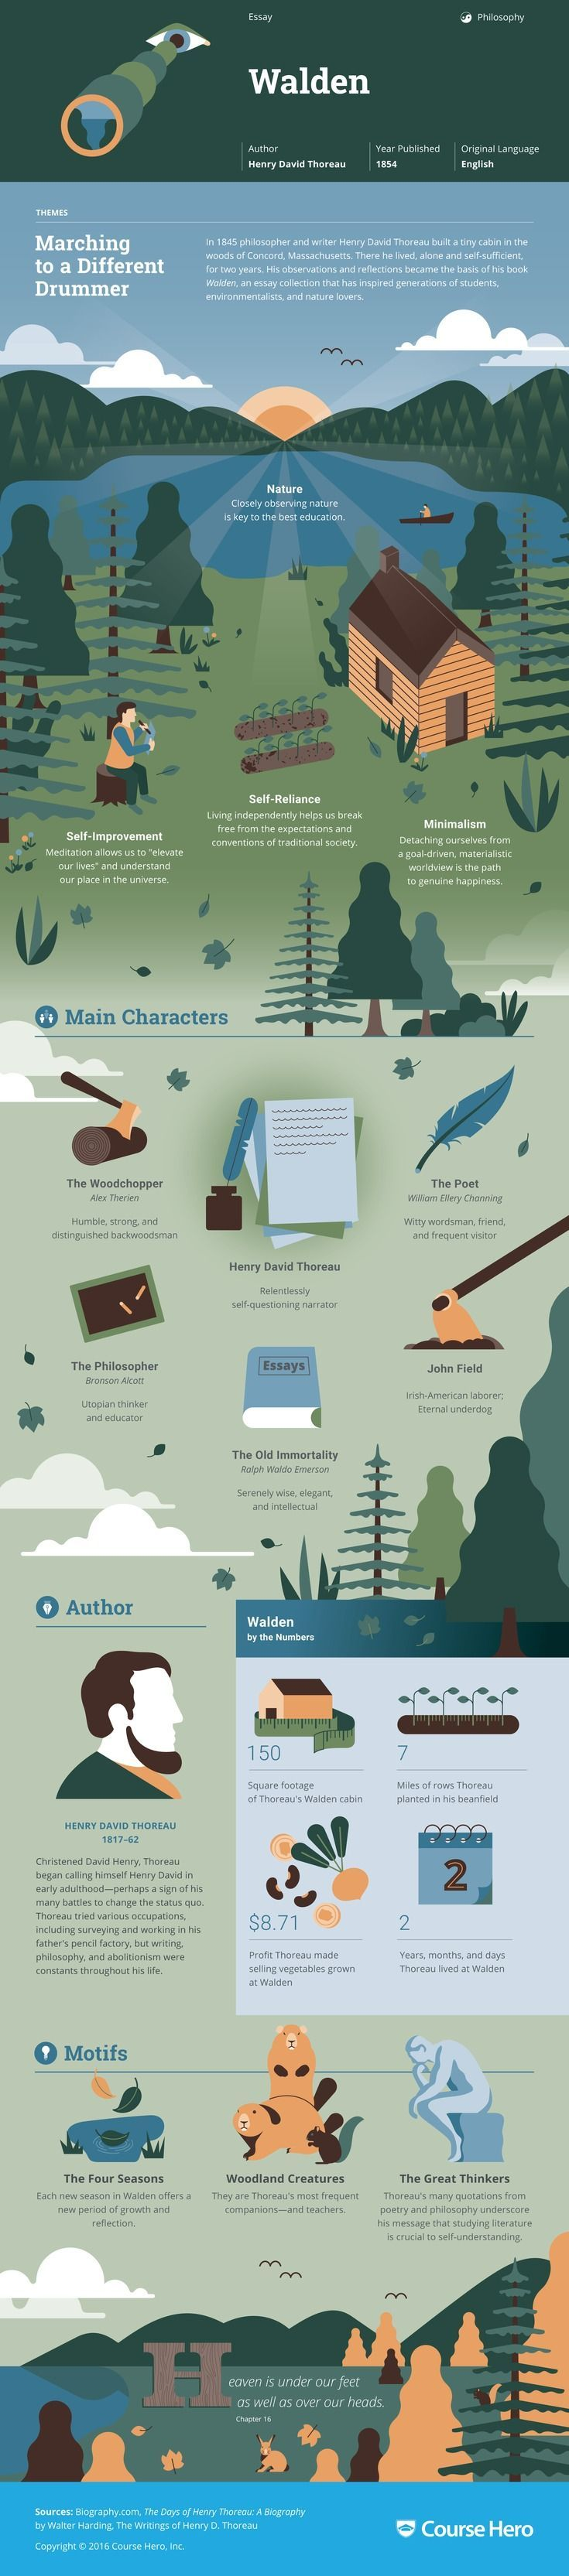 This @CourseHero infographic on Walden is both visually stunning and…